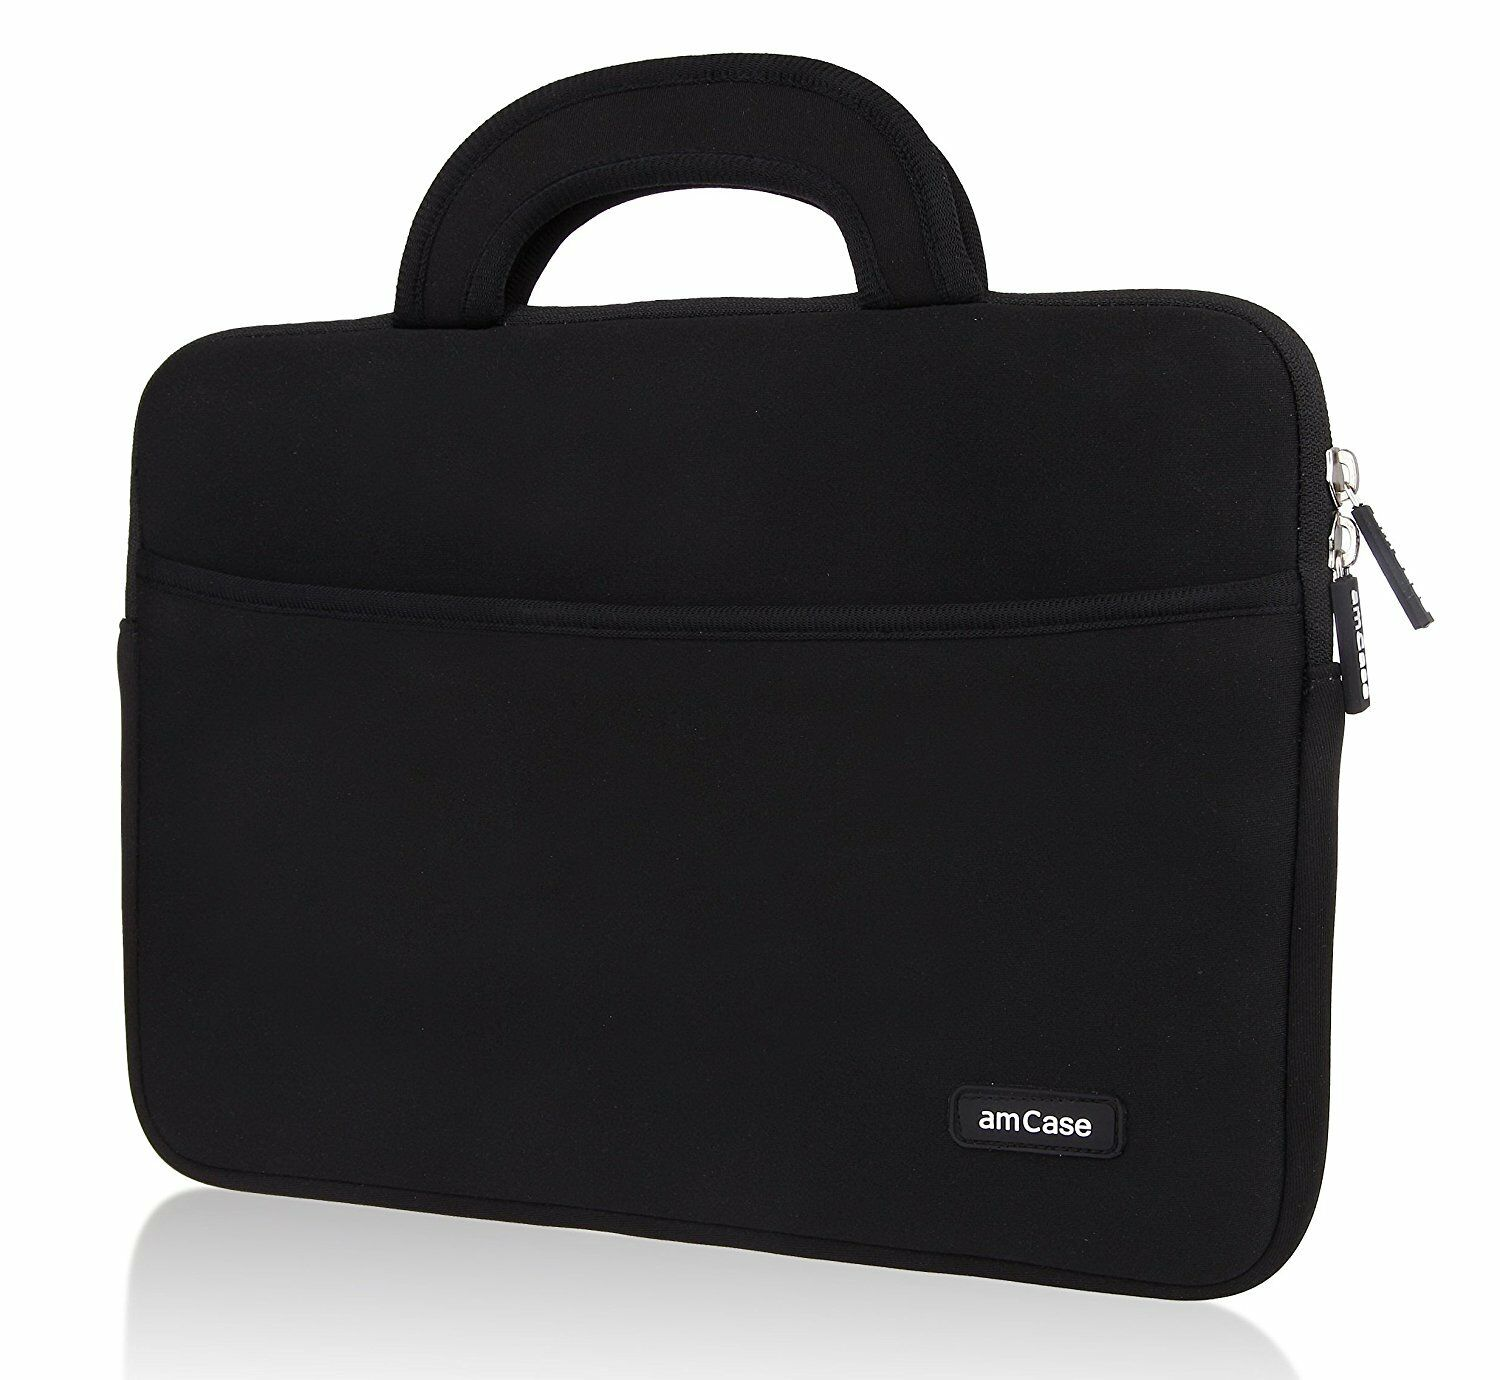 amCase HP Chromebook 14 Case/Sleeve for 14.1 inch Chromebook